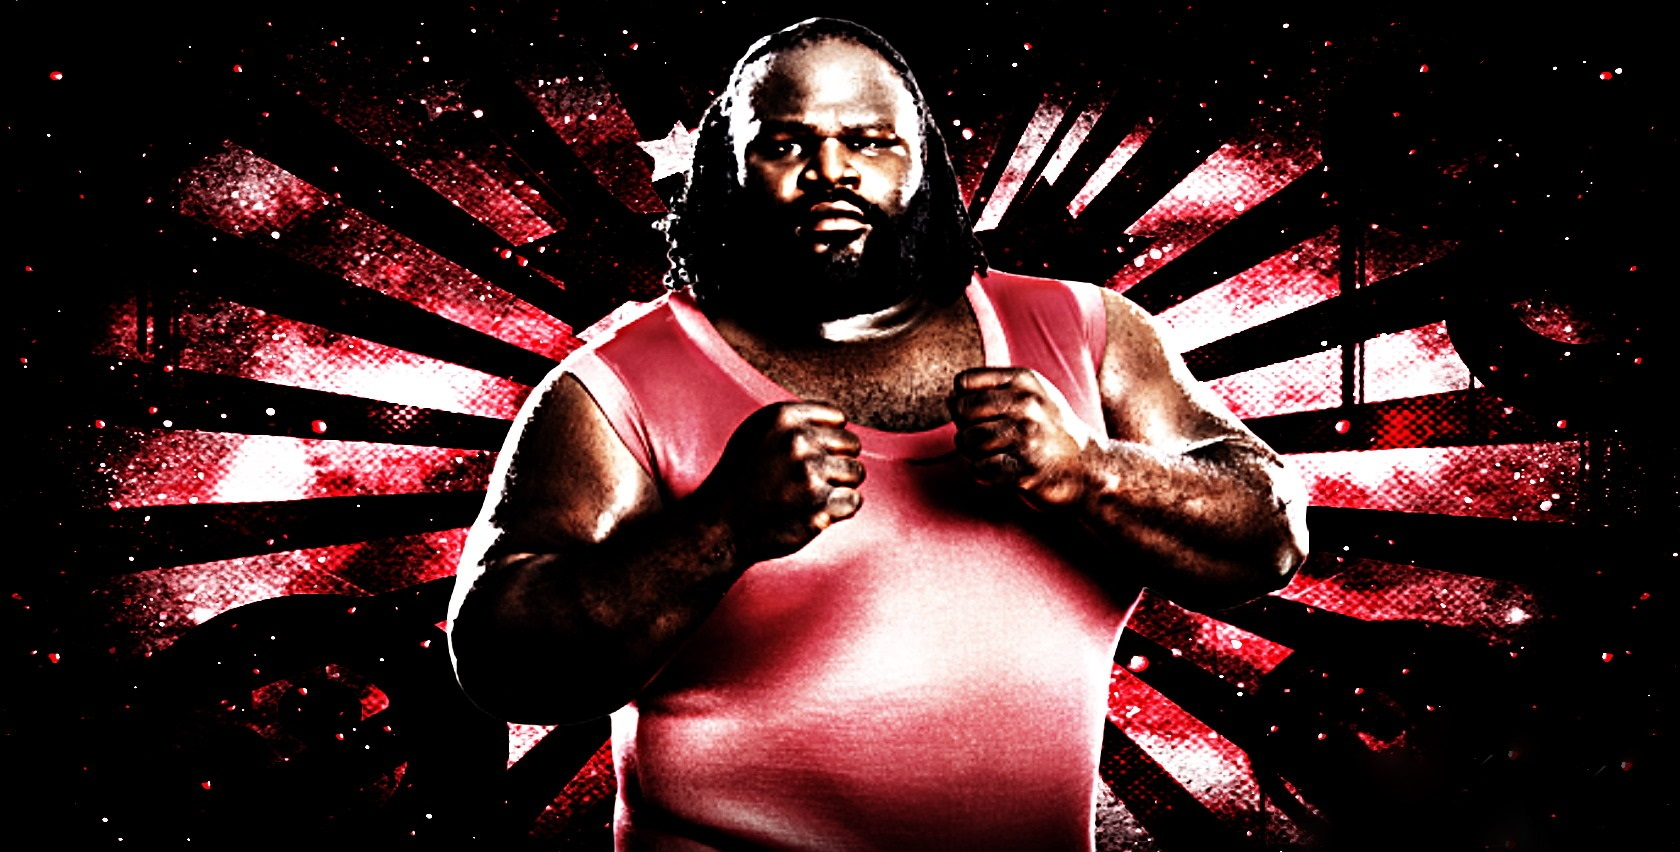 Dark WWE Wrestler Mark Henry Wallpaper 1680x852